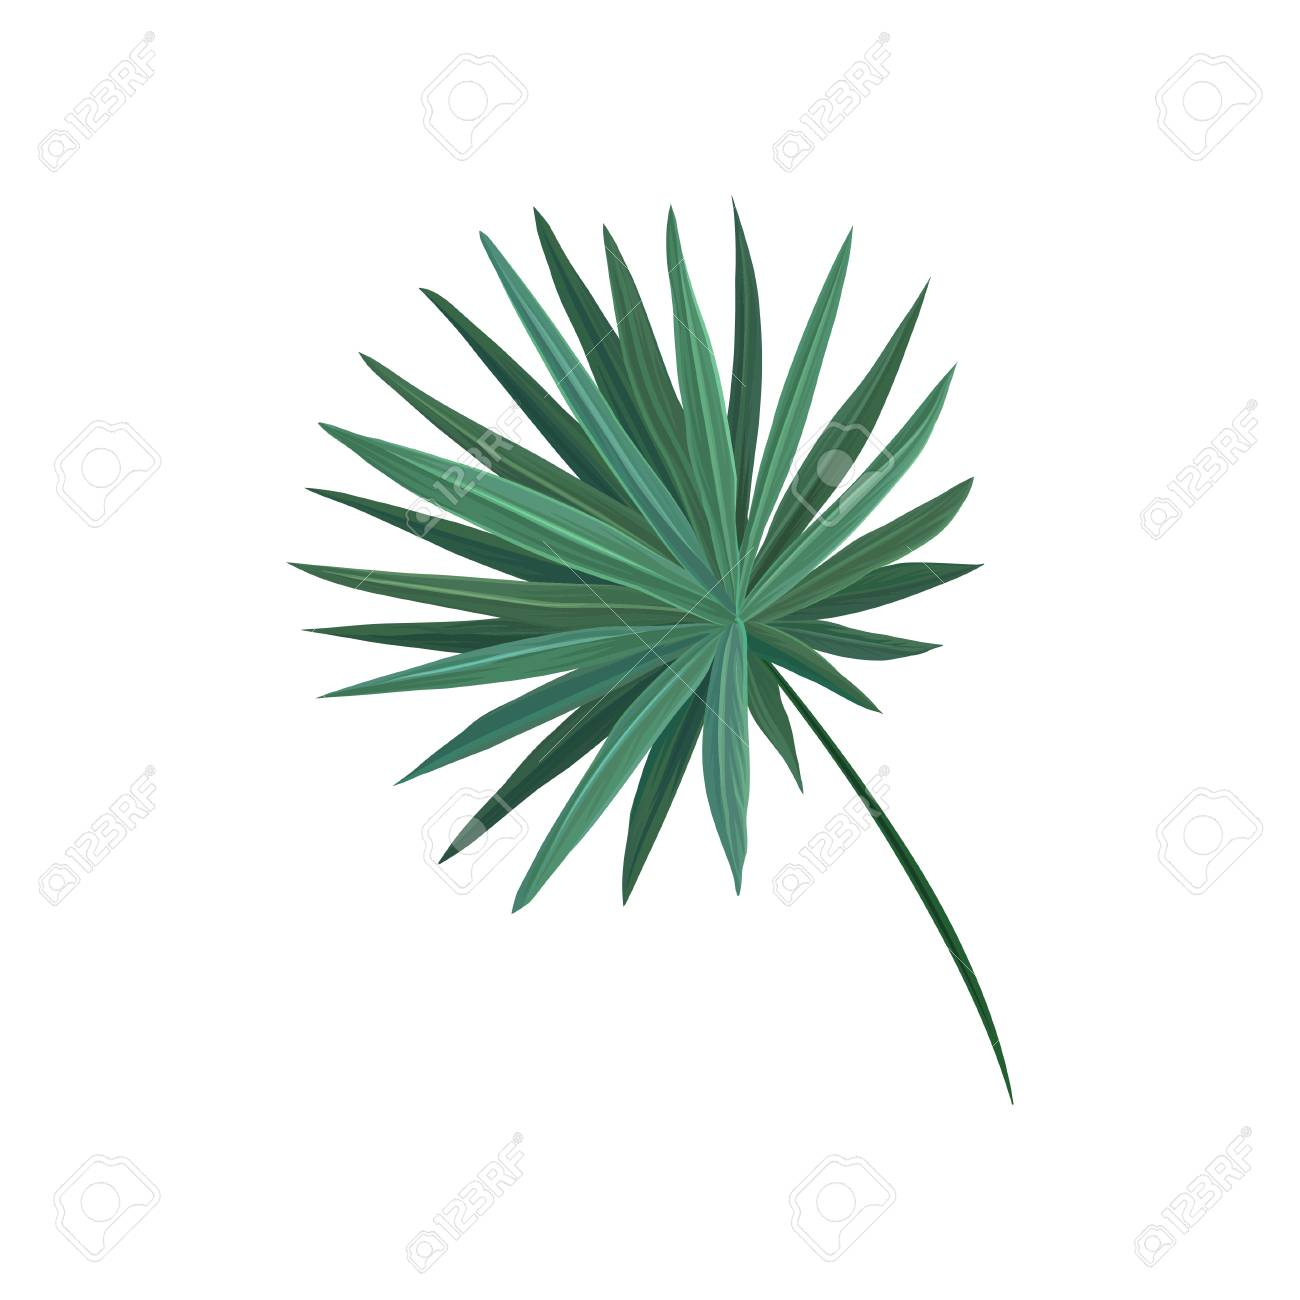 green fan palm tree leaf vector illustration royalty free cliparts rh 123rf com summer palm tree leaves vector summer palm tree leaves vector